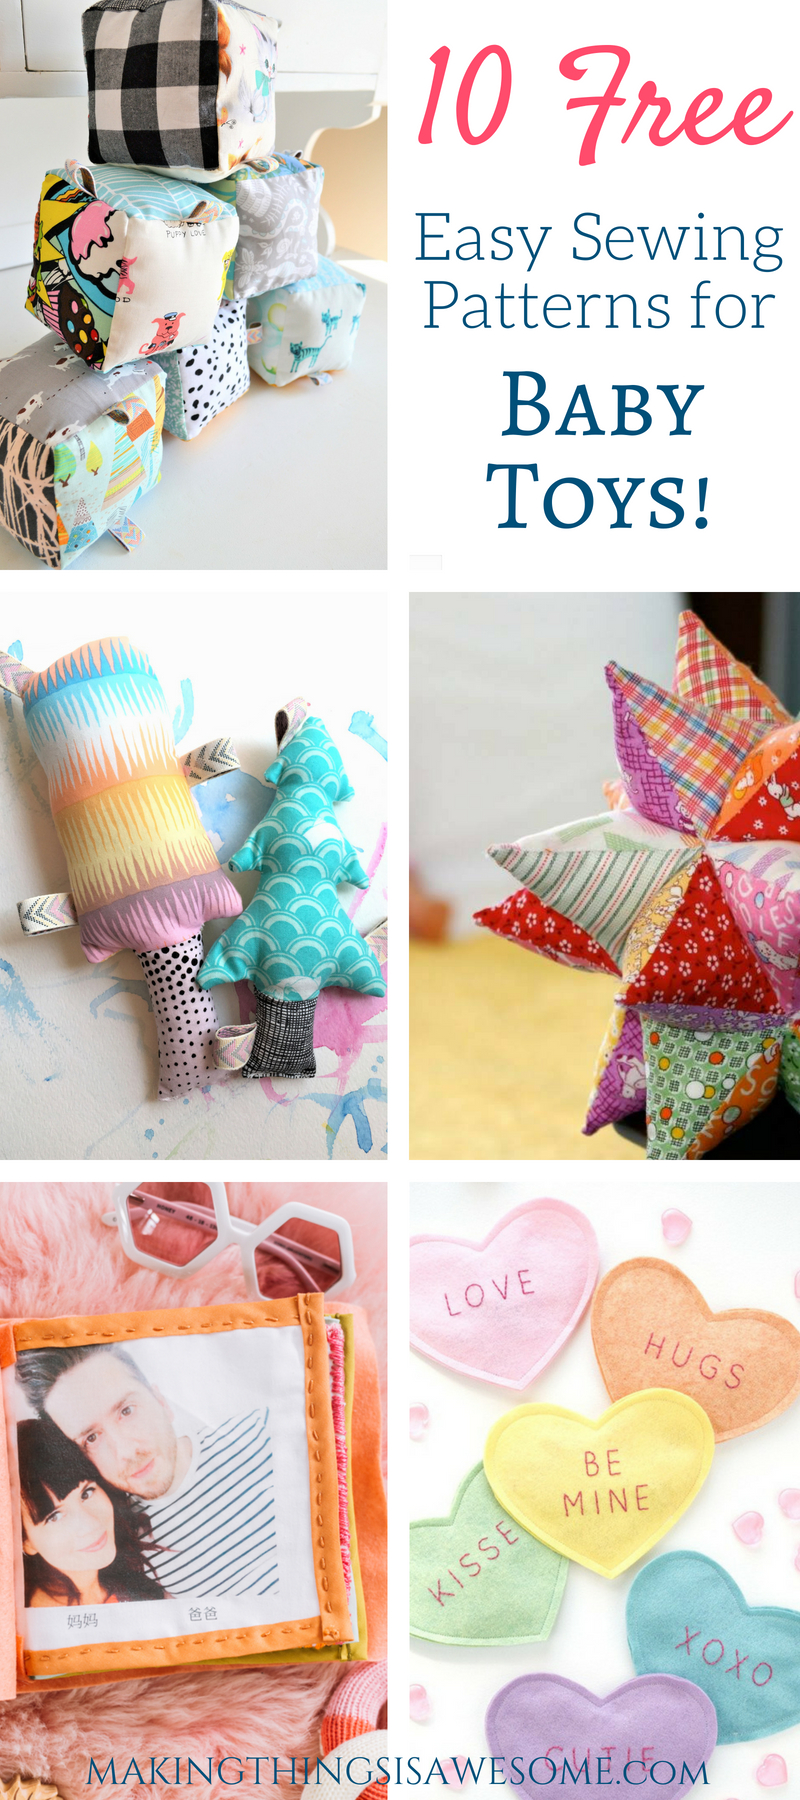 How to Sew DIY Baby Toys : Round-up! - Making Things is Awesome